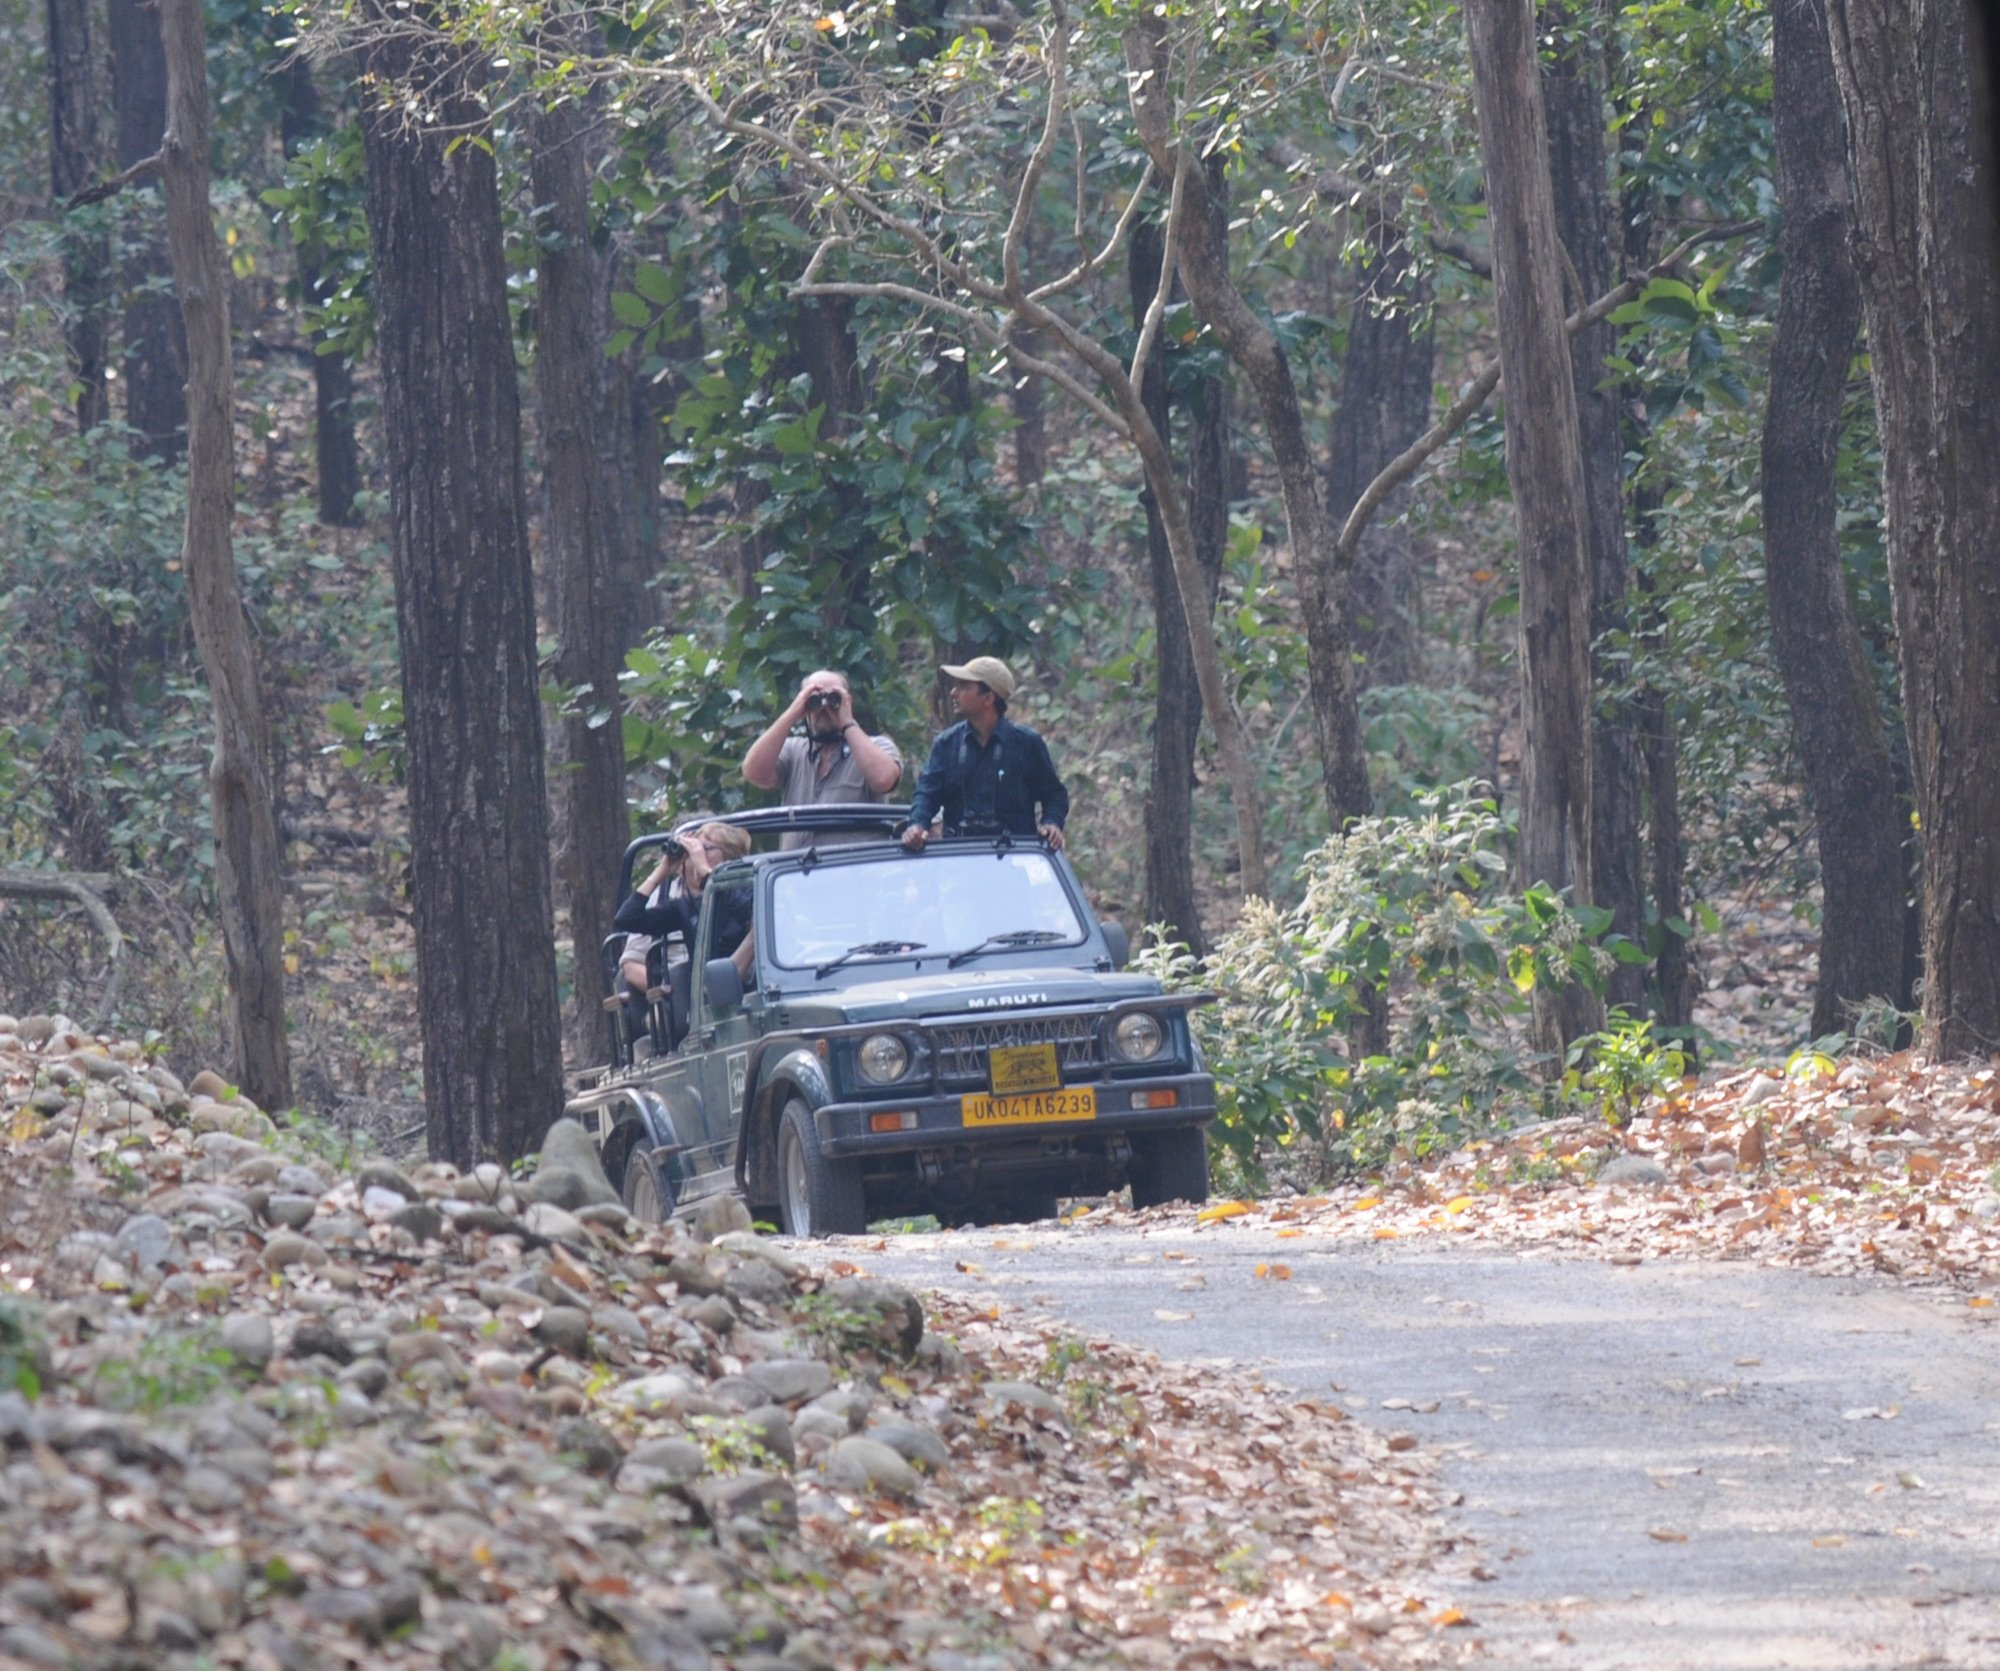 Looking for Tigers at Corbett